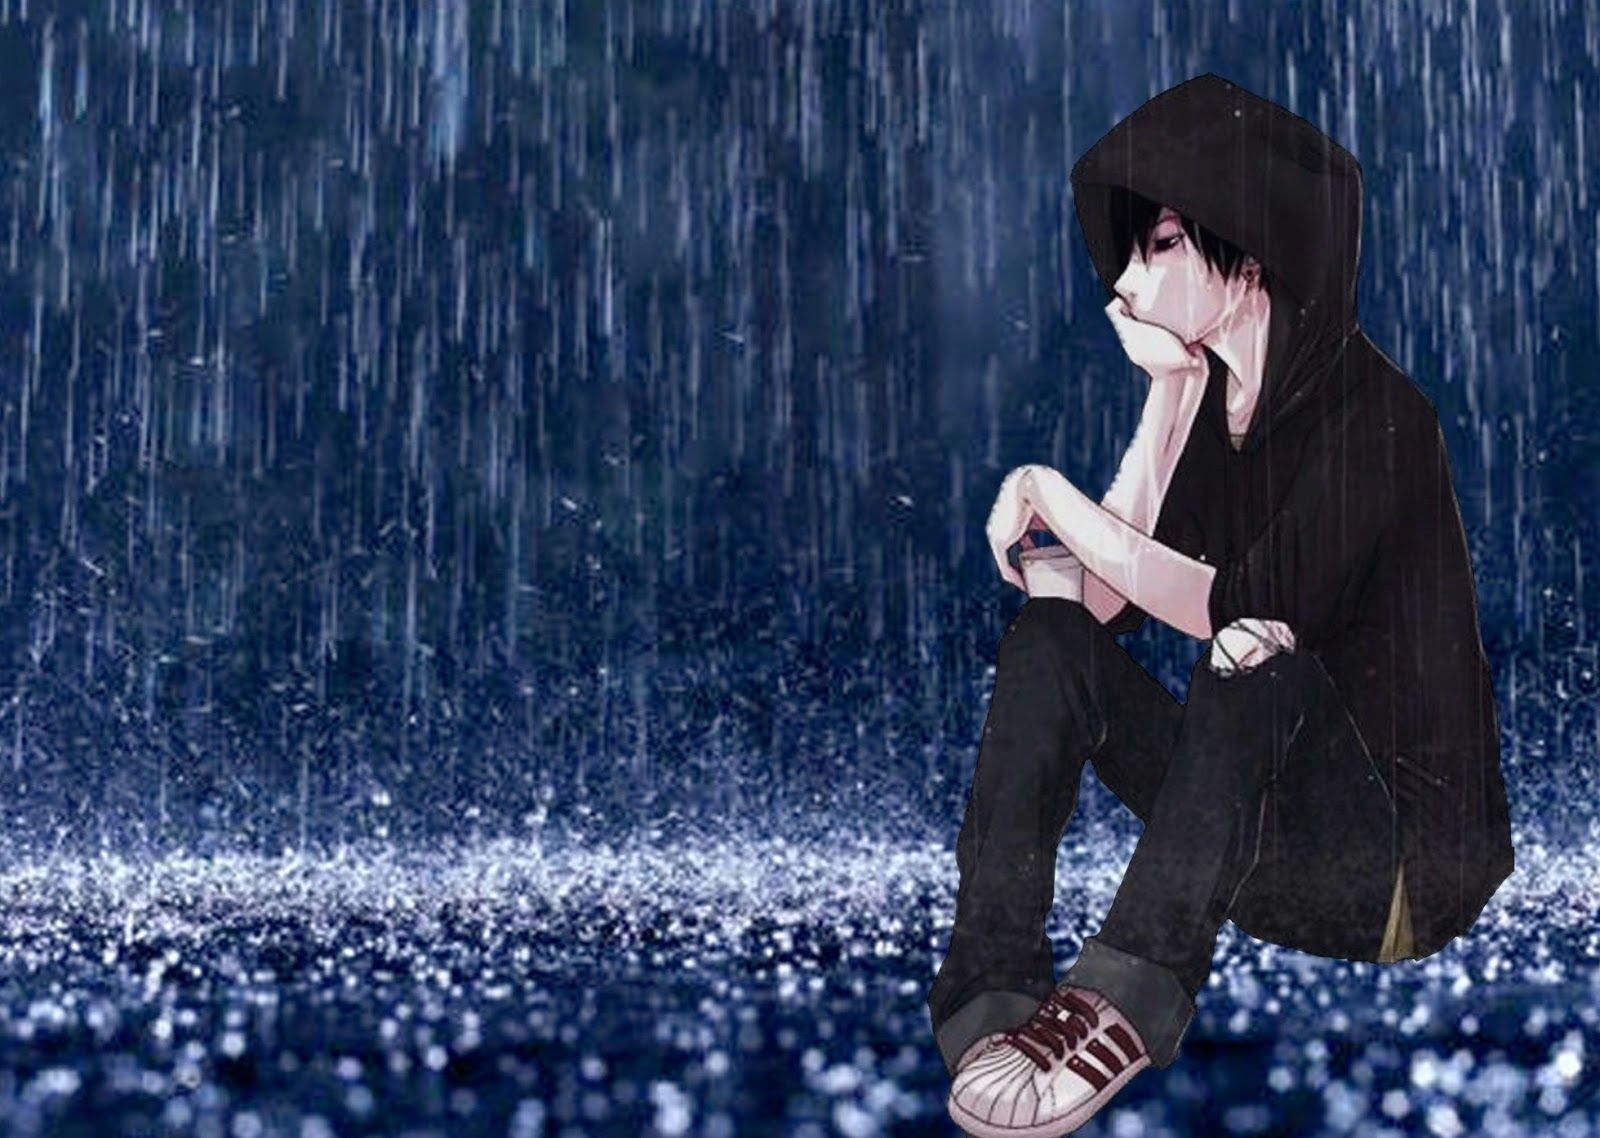 Sad anime boy crying in the rain alone anime boy crying in the rain alone with quotes f5quotes